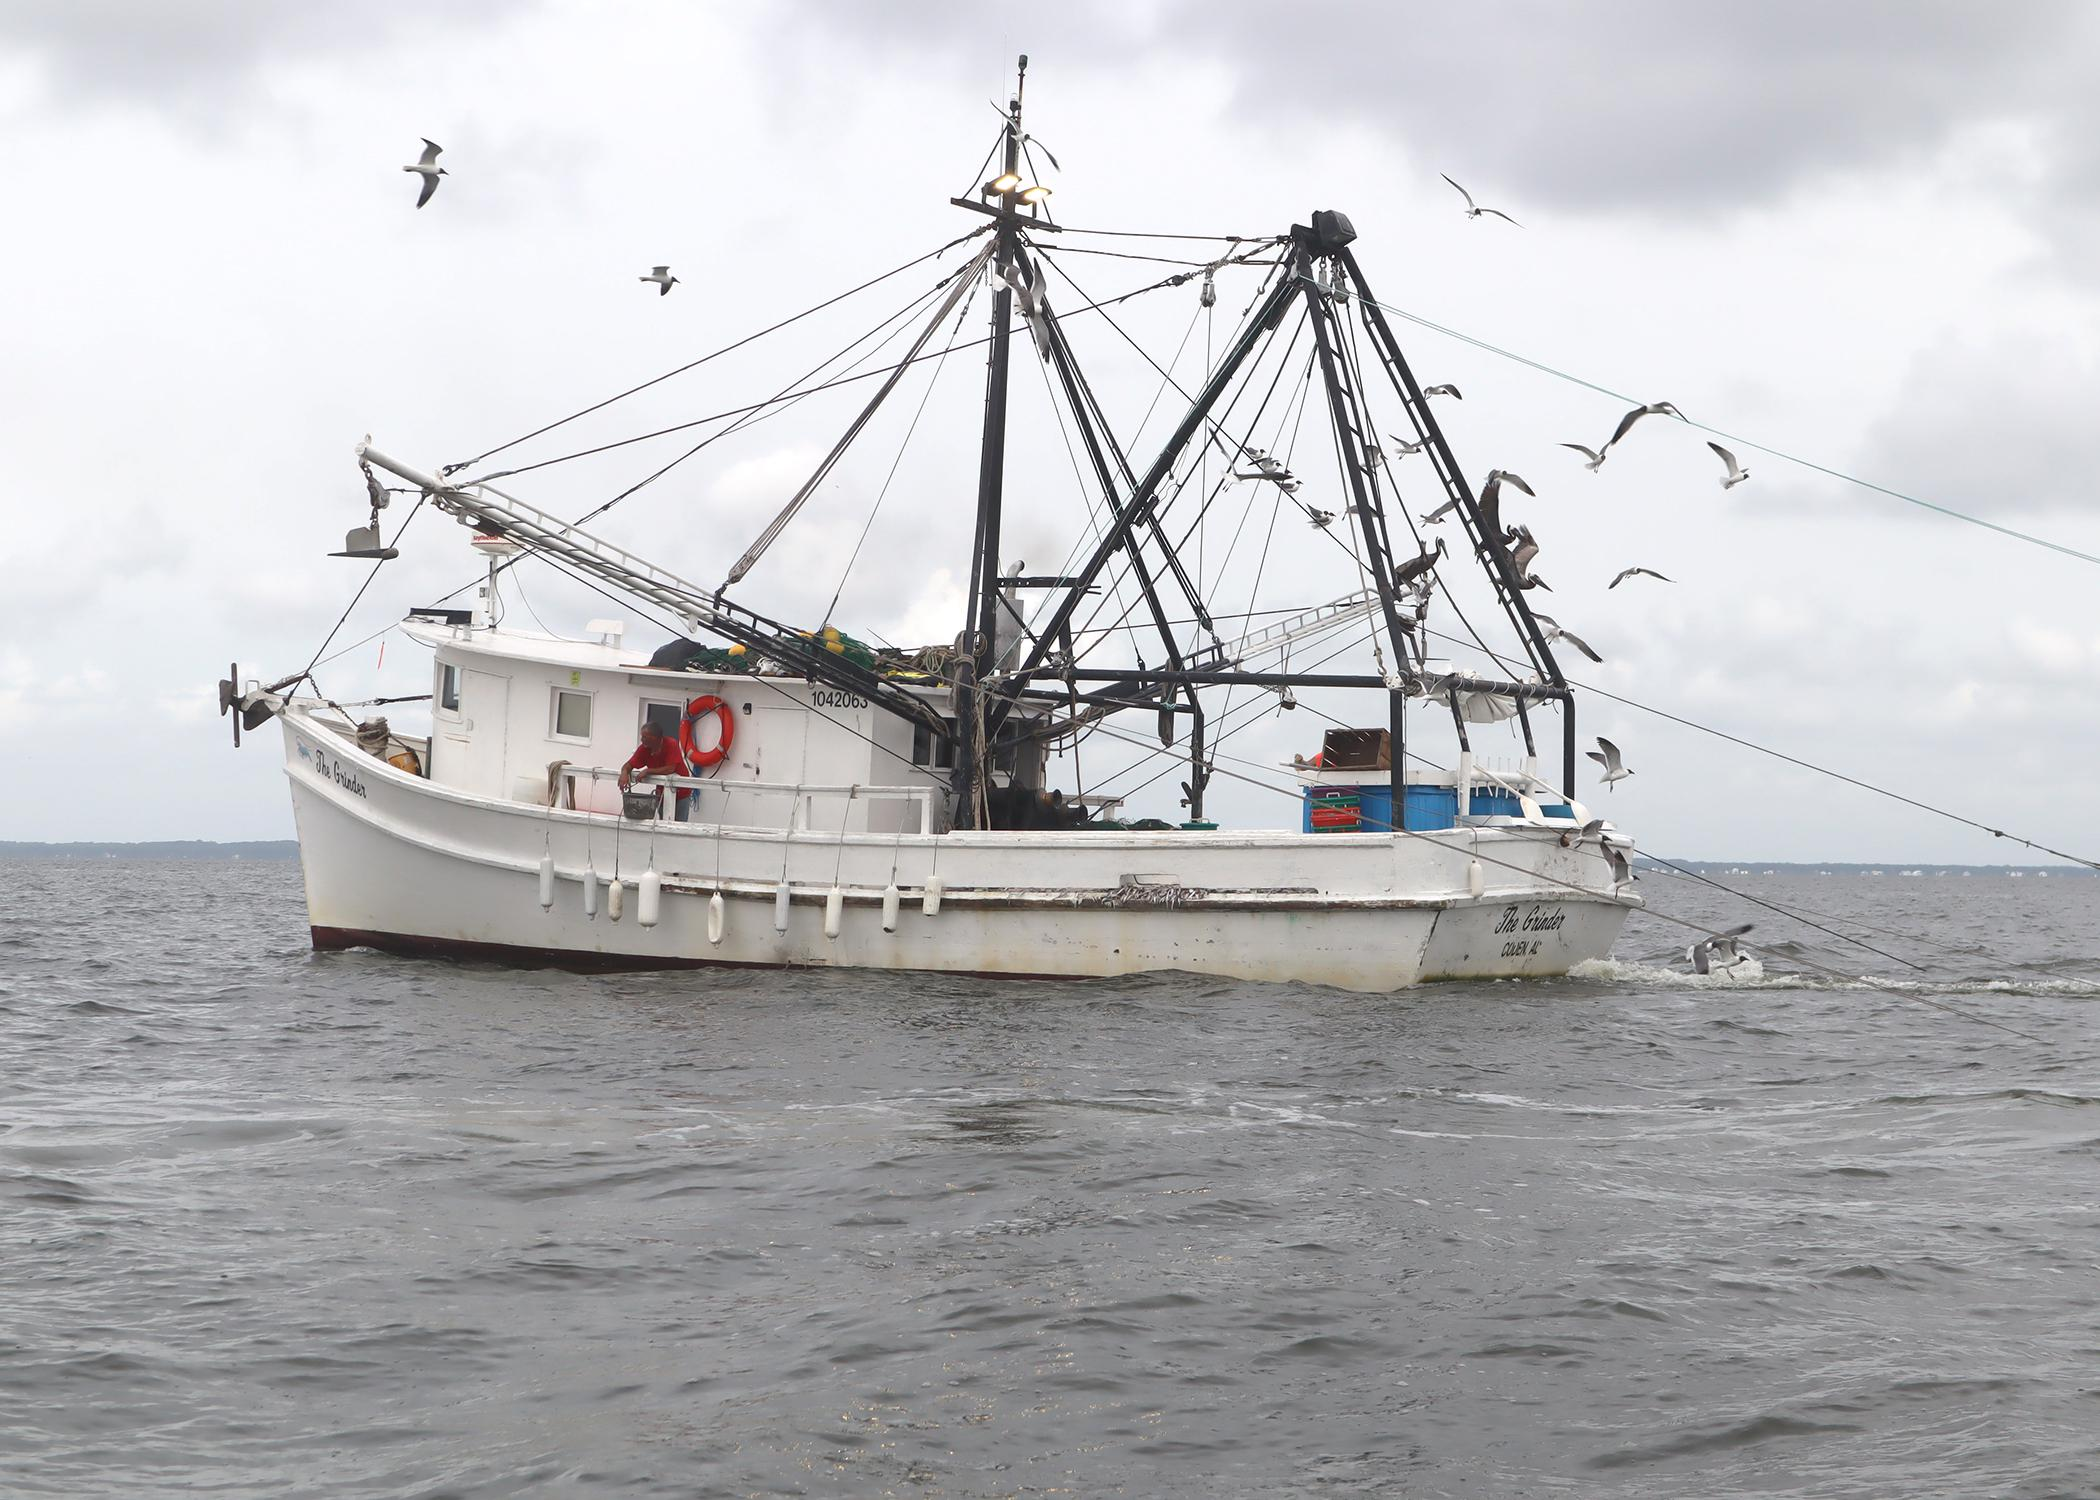 Fishing vessel trawls multiple nets for shrimp.